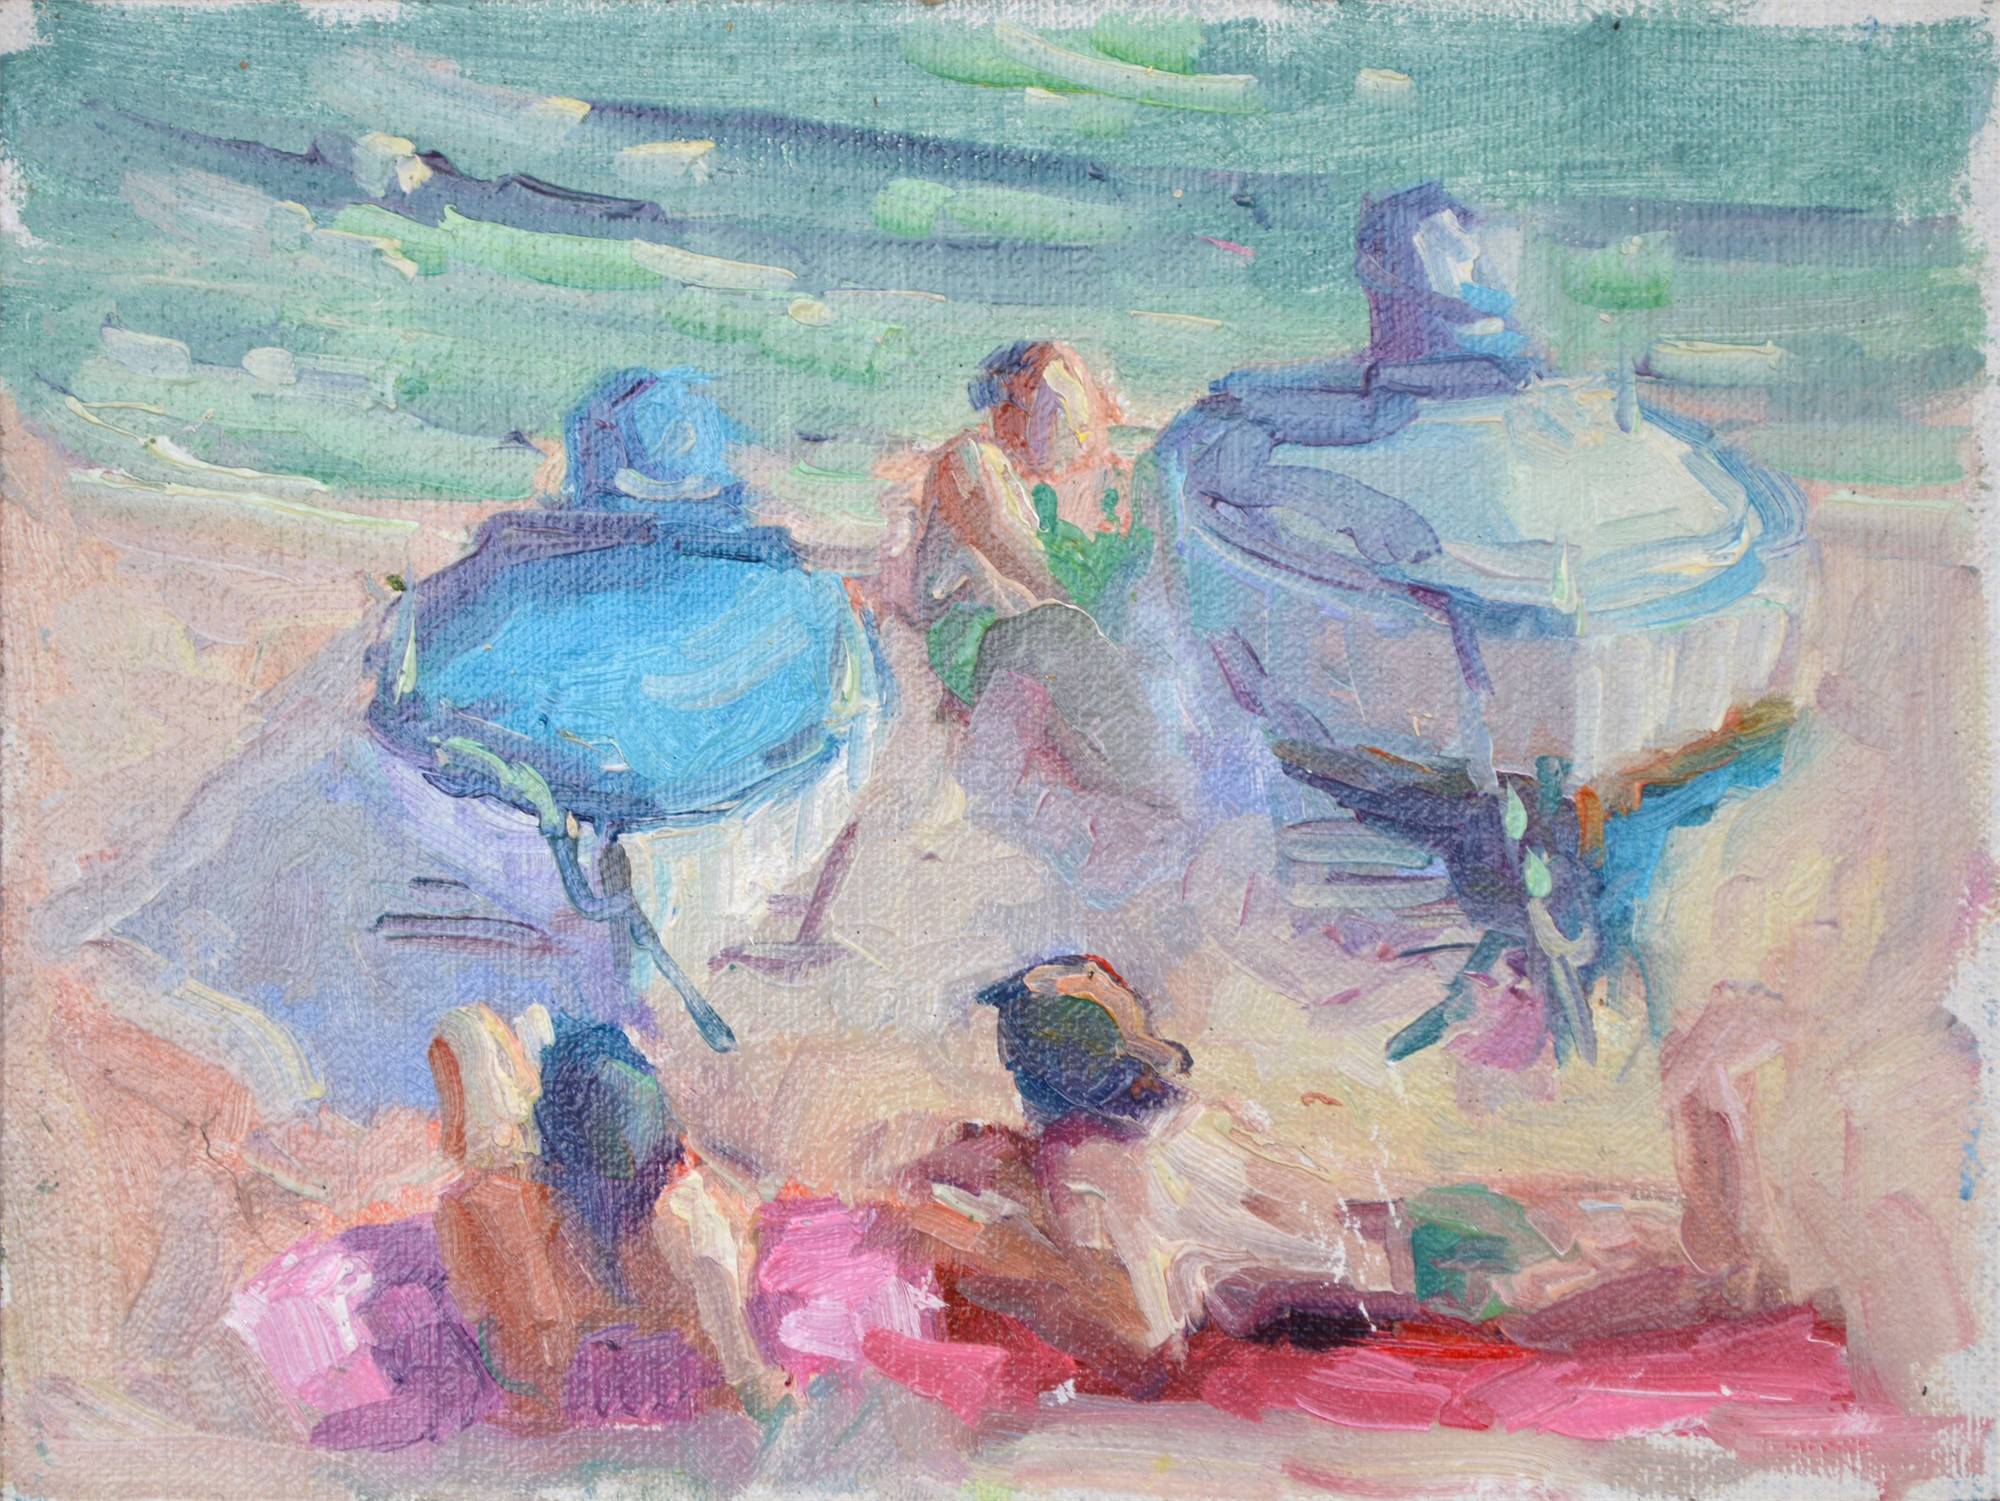 Day at the Beach in Spain by Karen Hewitt Hagan